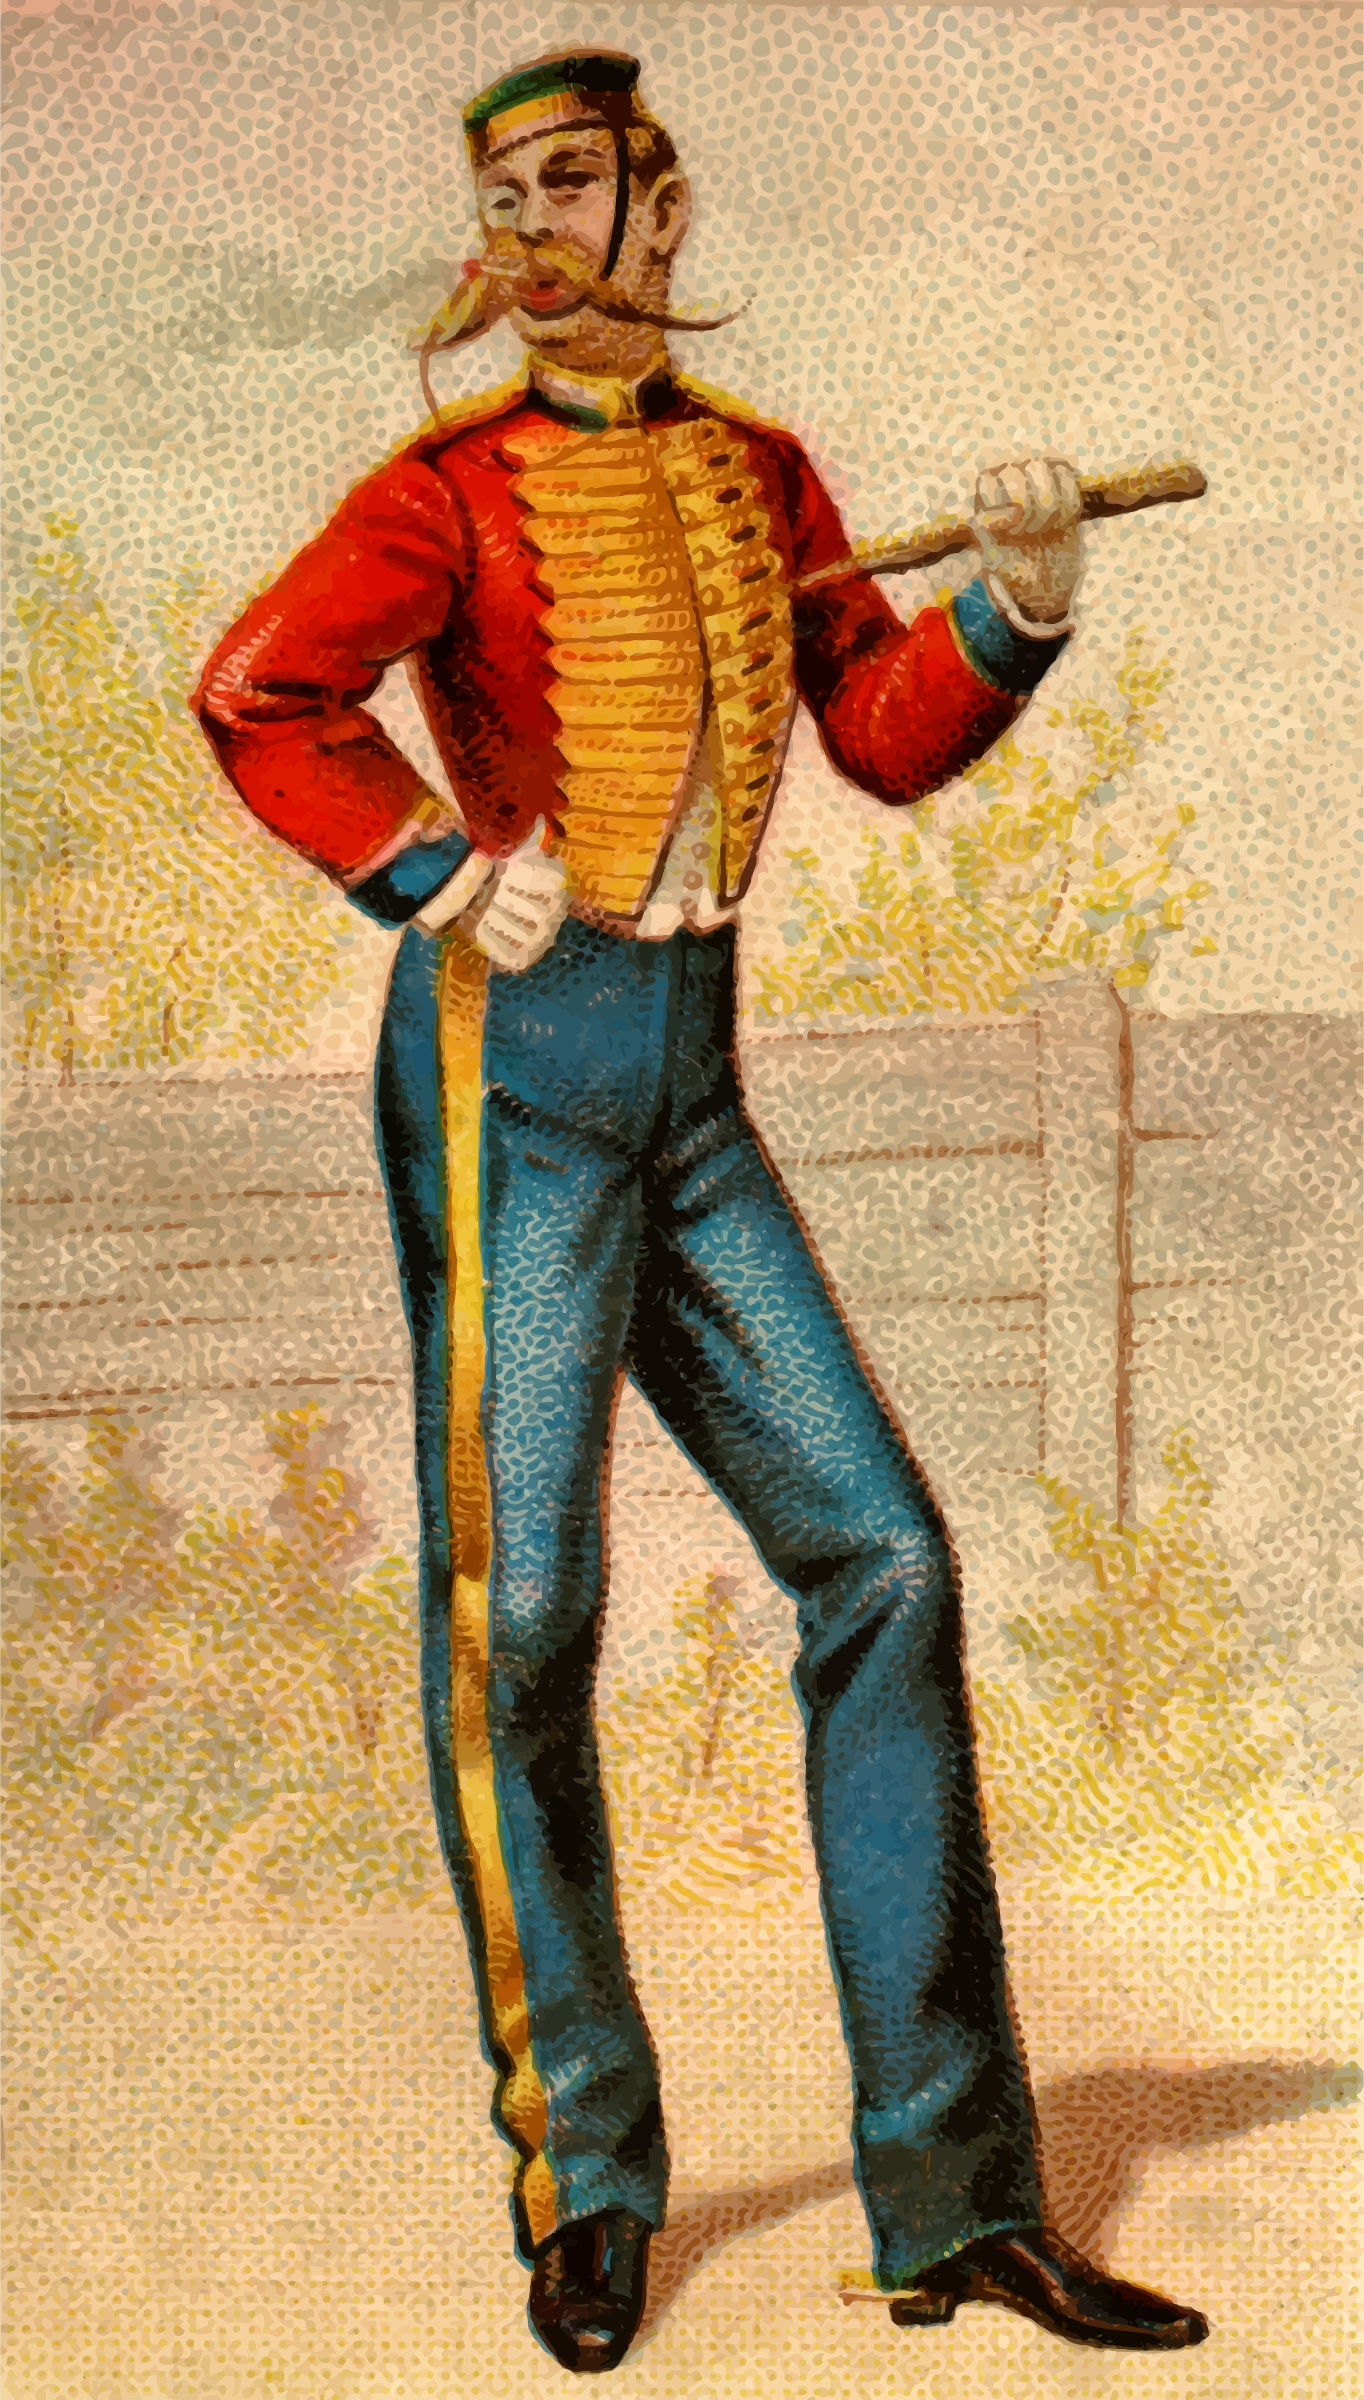 Cigarette card - English Horseguards by Firkin